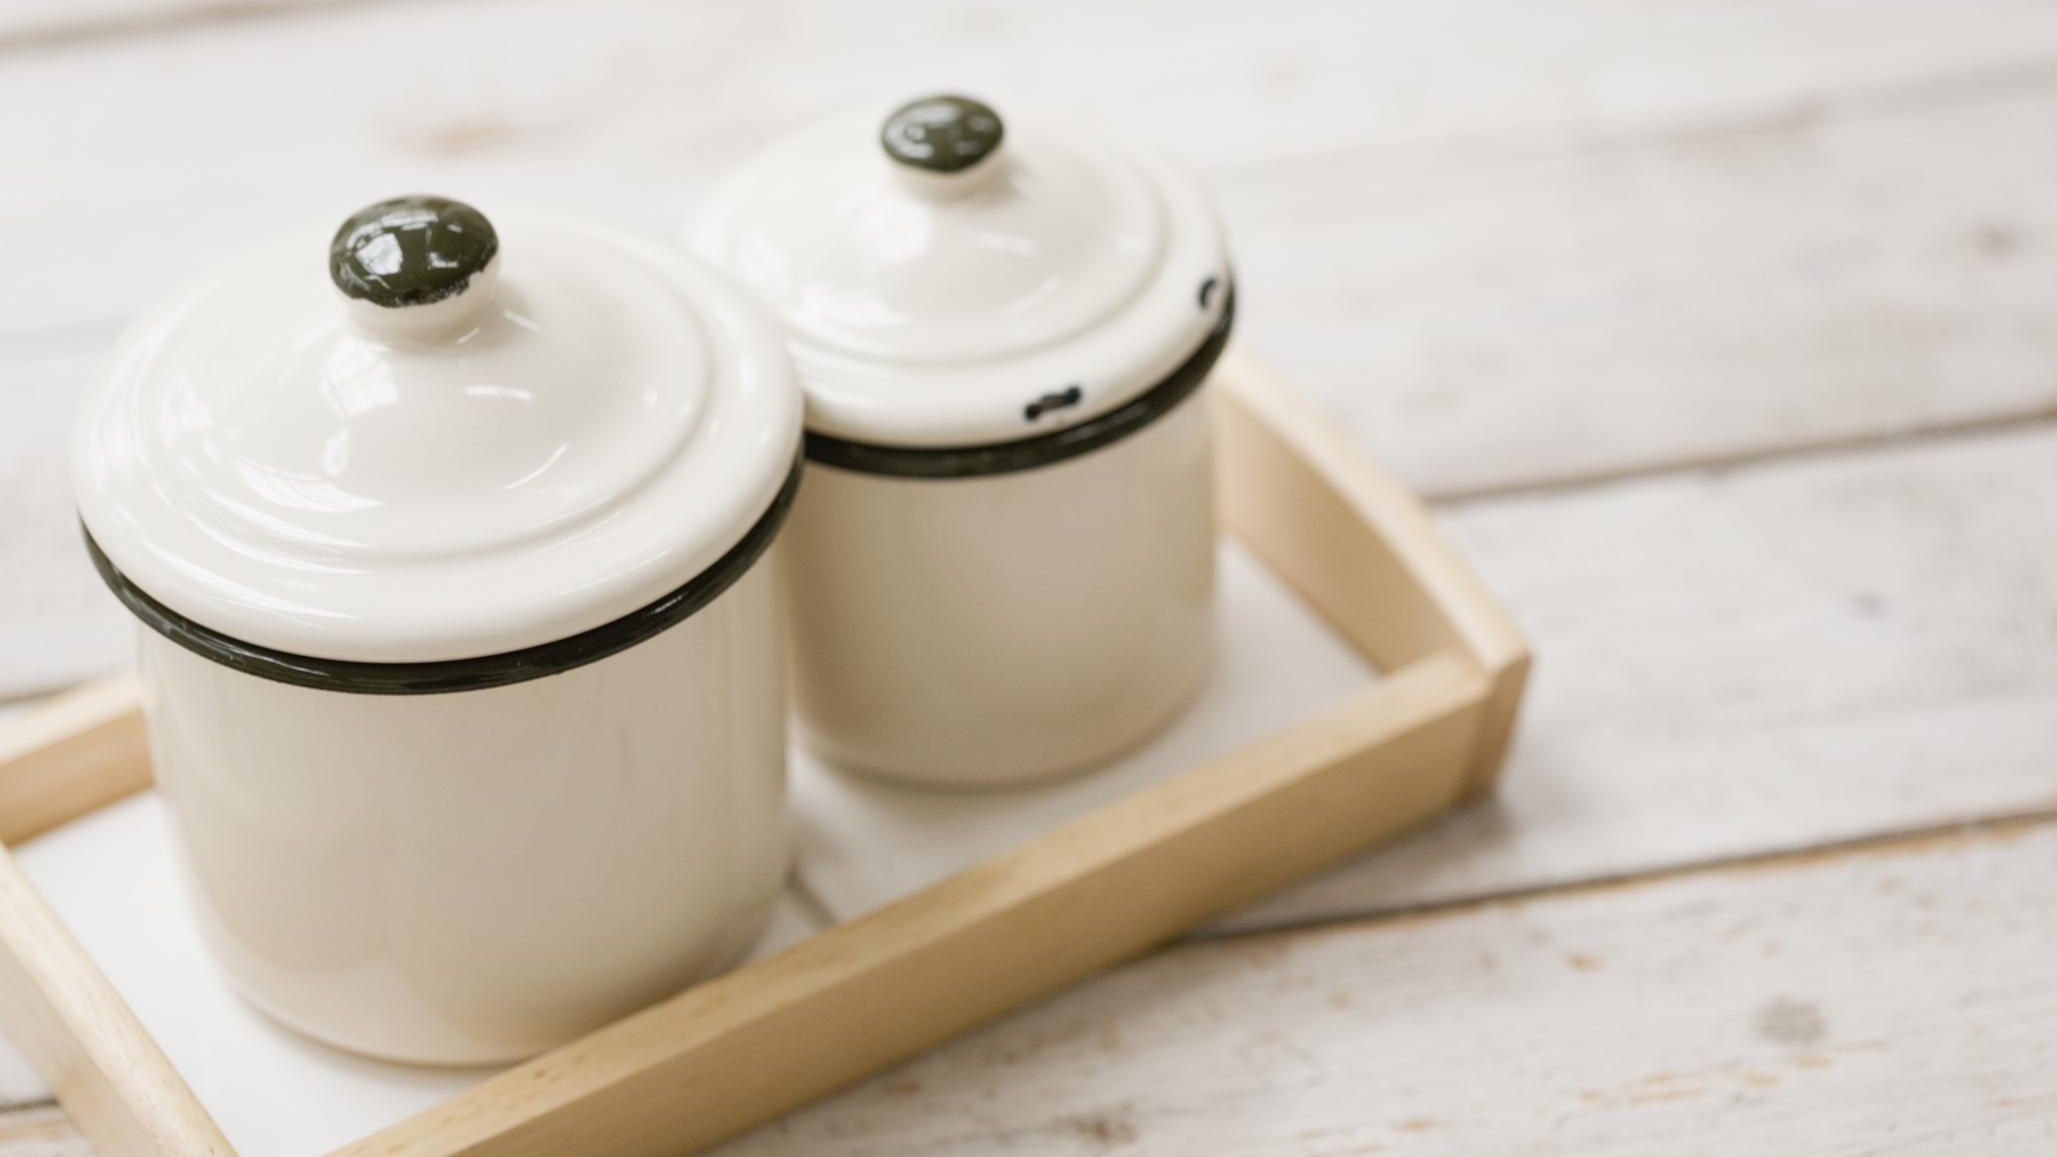 How To Refurbish And Personalize Old Canisters